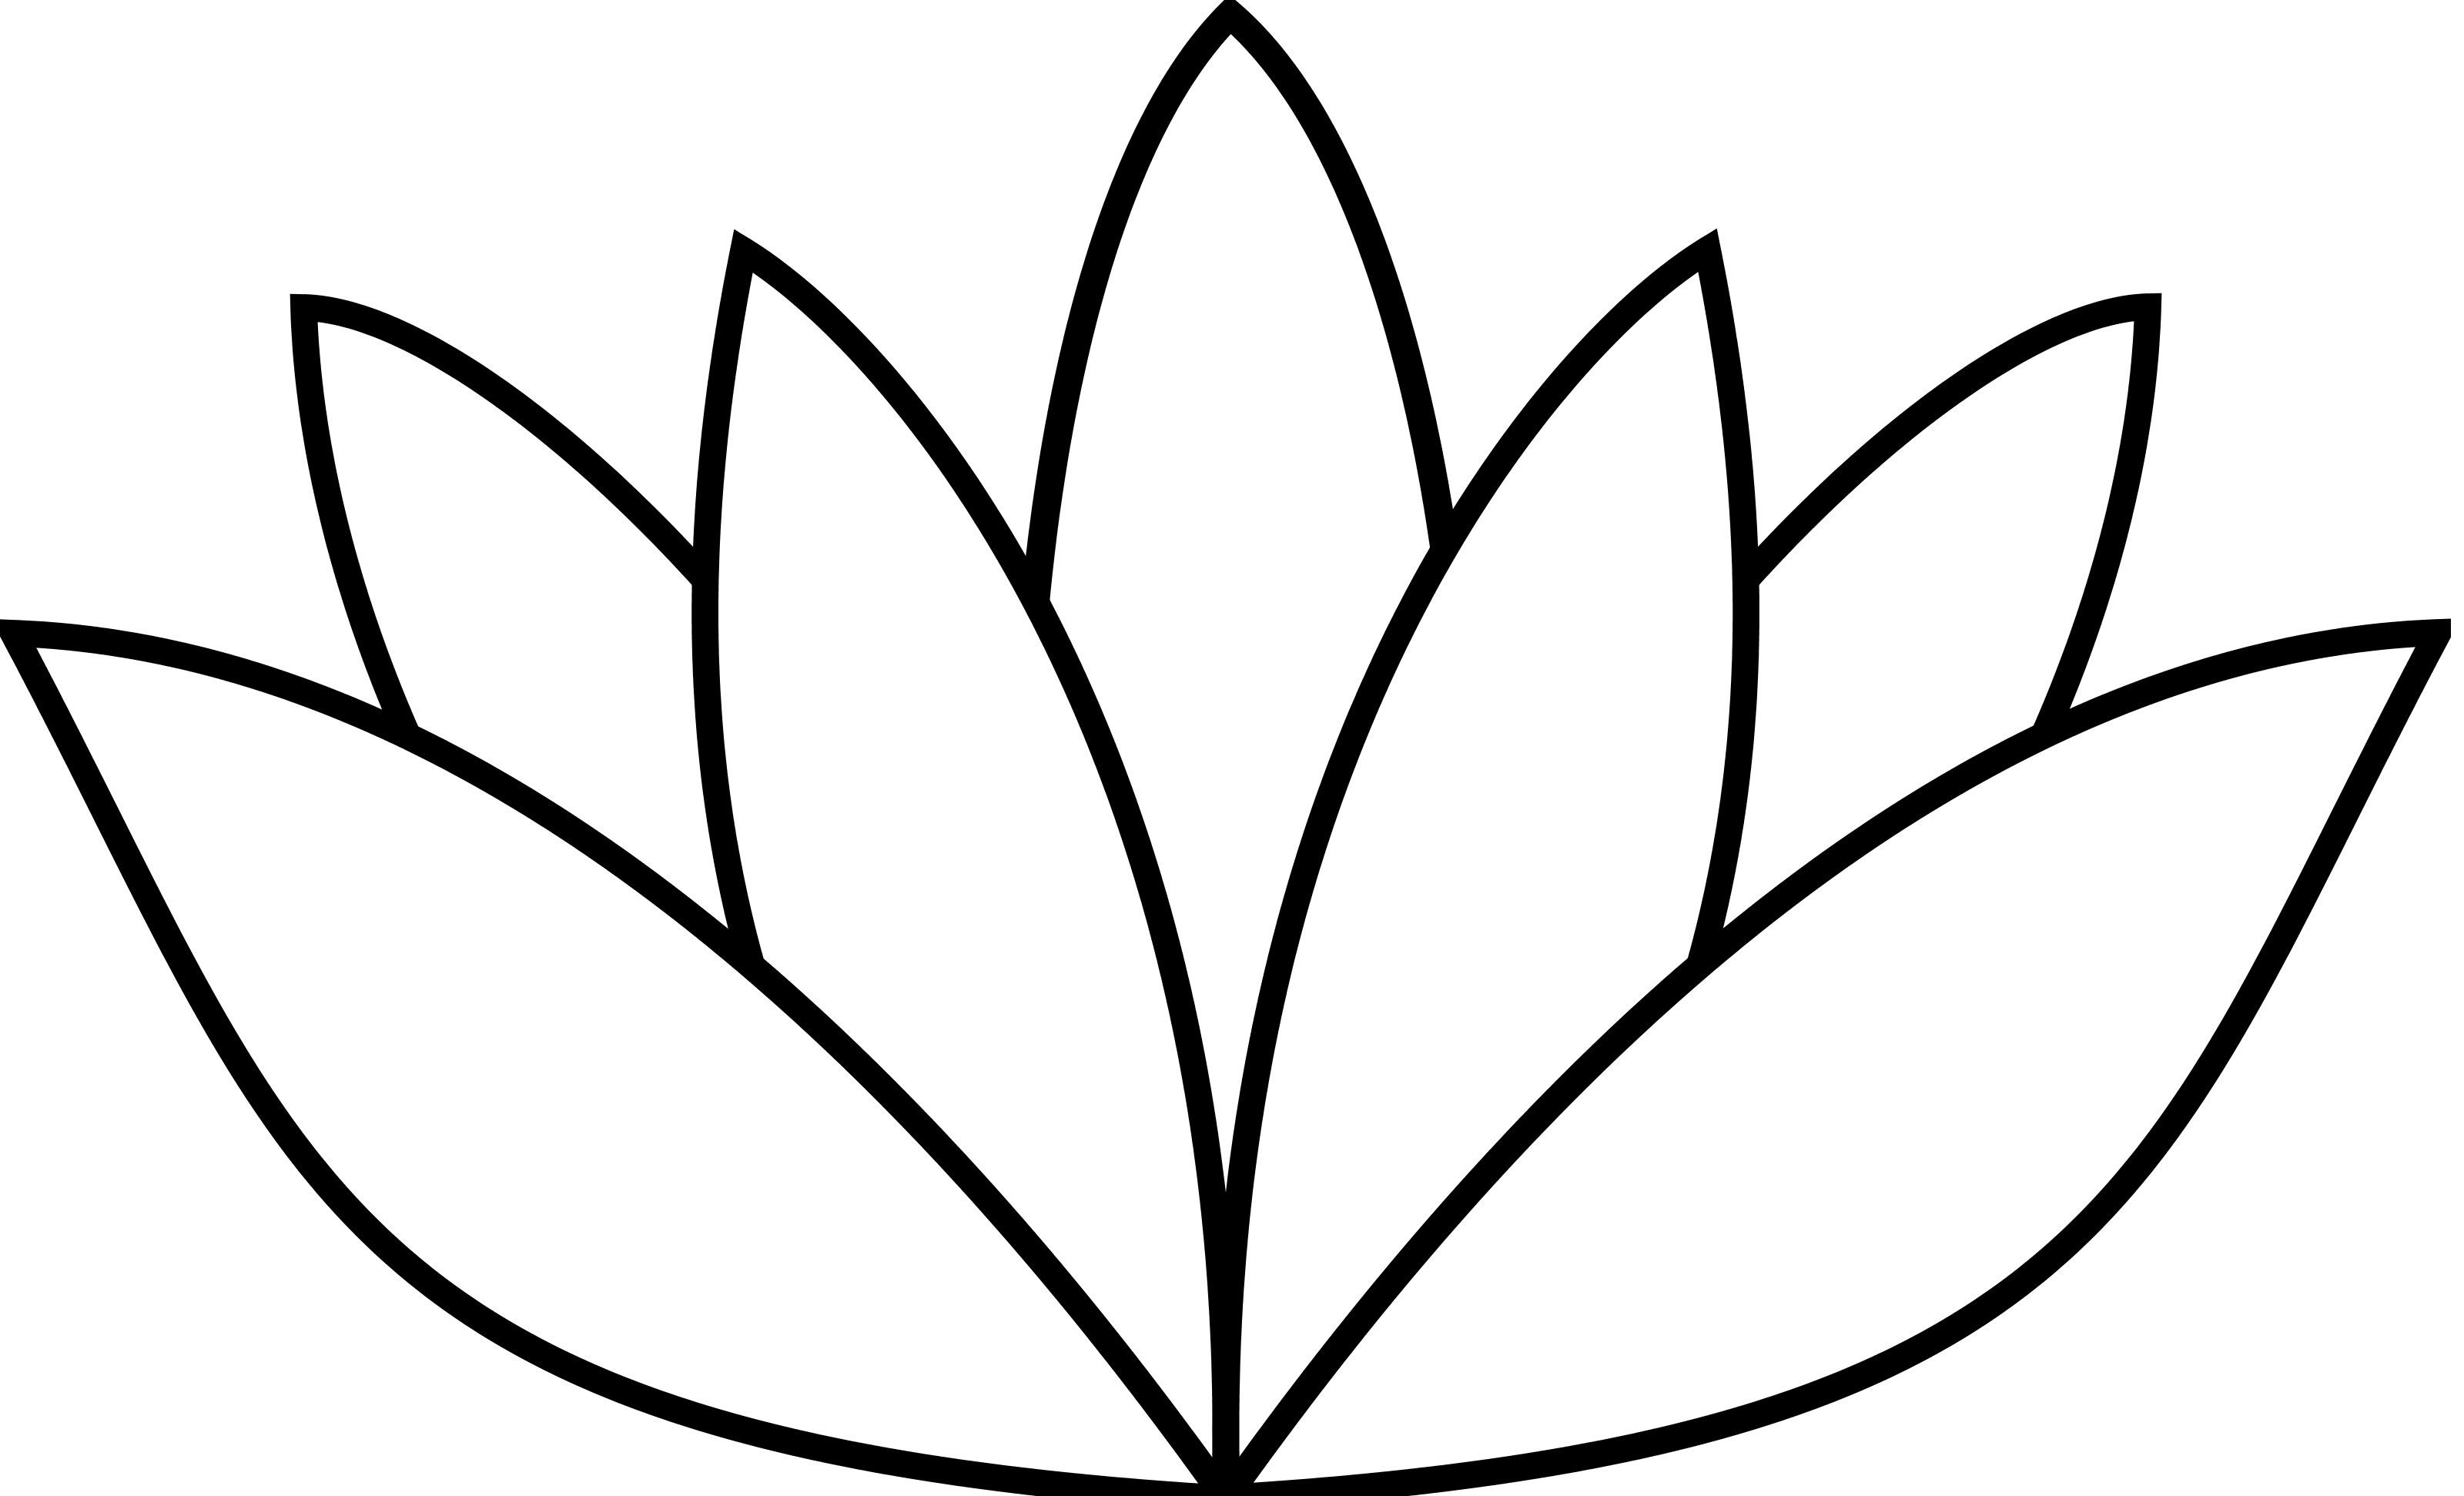 Lotus flower outline clipart free clip free library Free Lotus Flower Line Drawing, Download Free Clip Art, Free ... clip free library